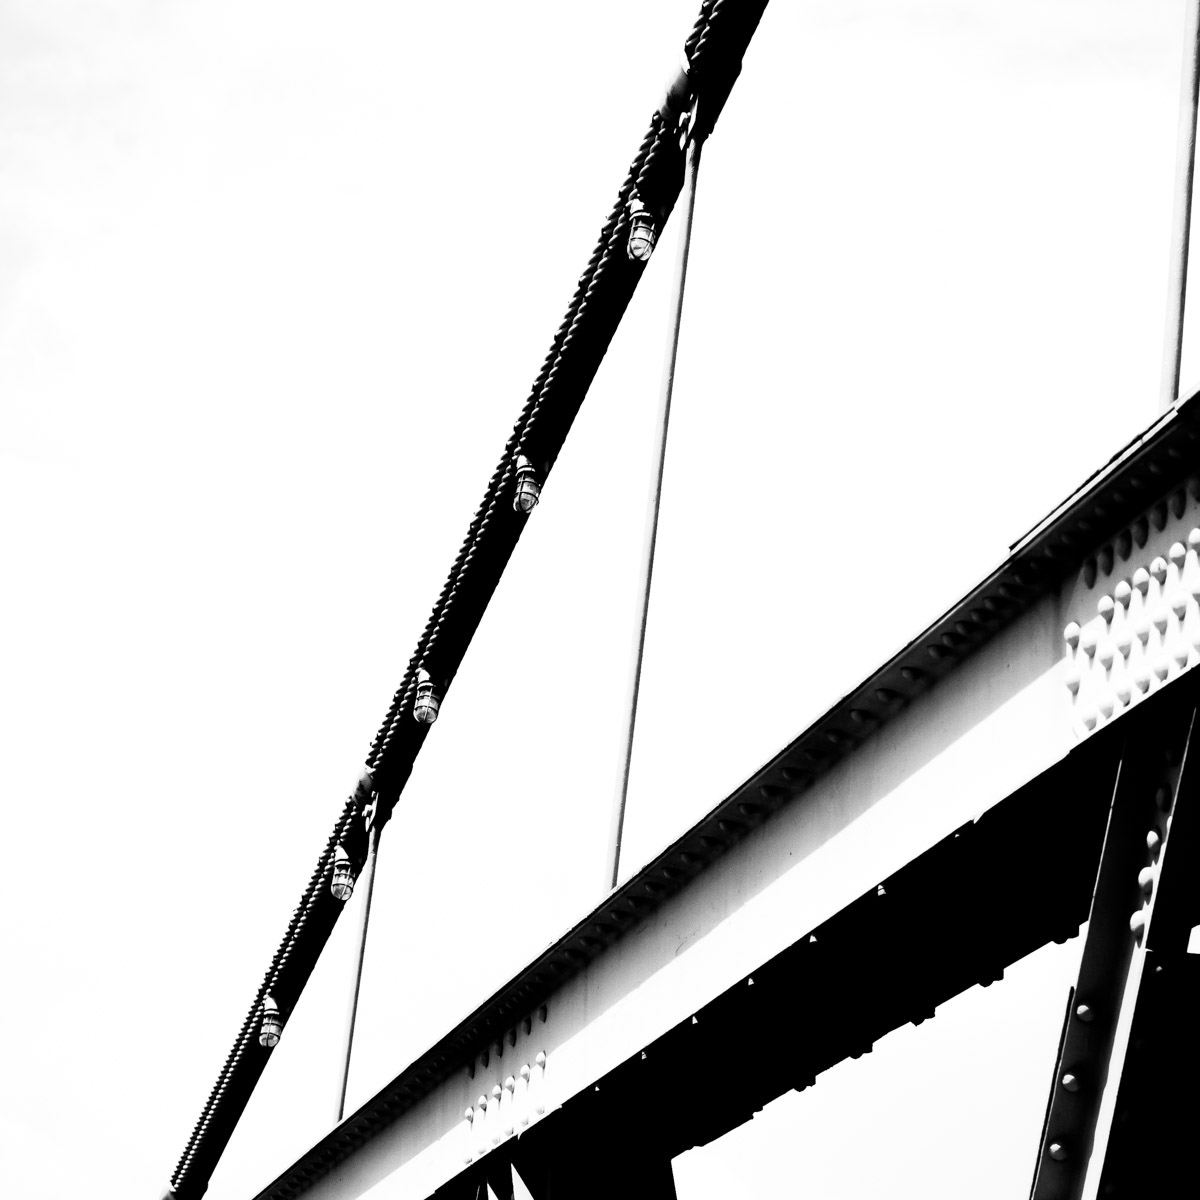 Support cables on the historic Waco Suspension Bridge over the Brazos River, Waco, Texas.